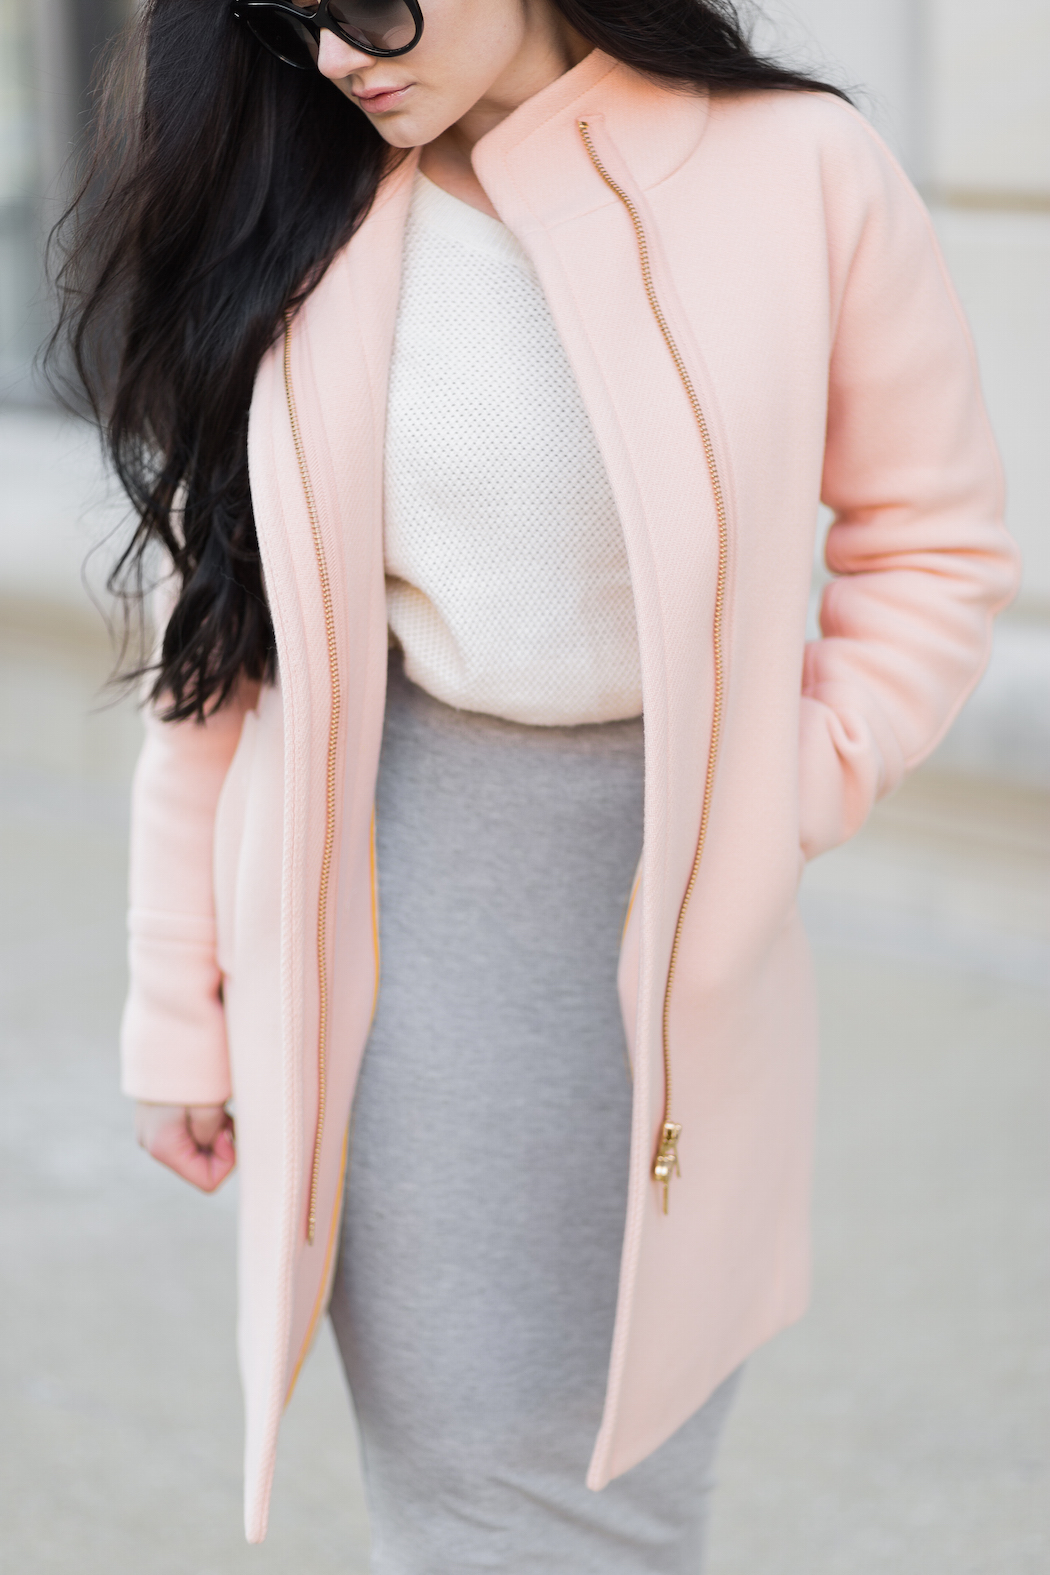 grey + cream + peach